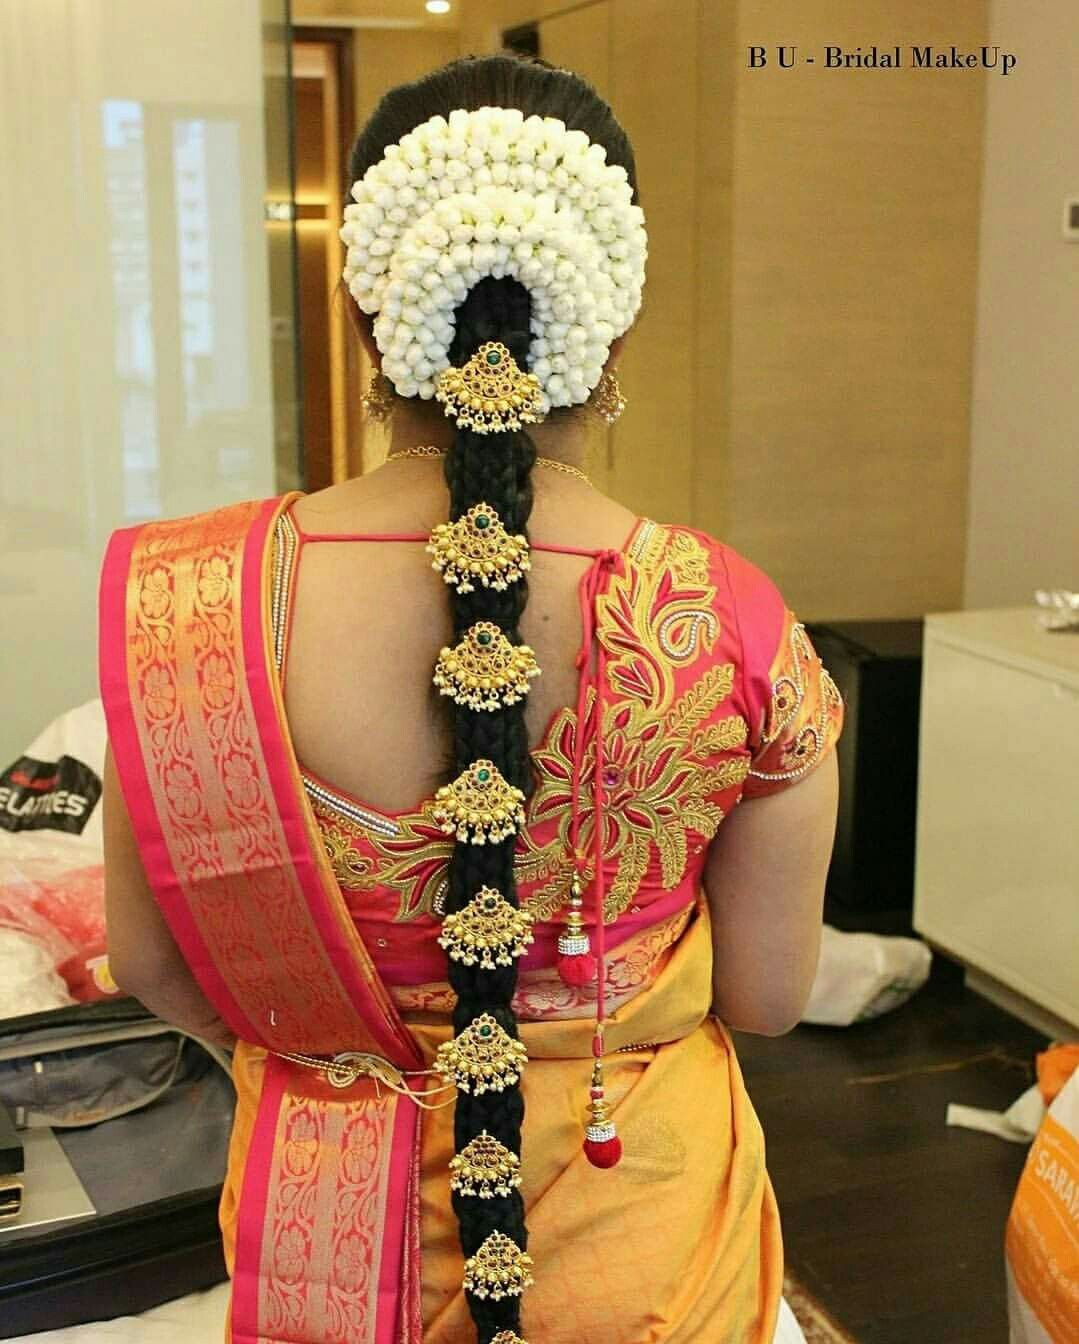 hairstyle | hairstyle in 2019 | indian wedding hairstyles